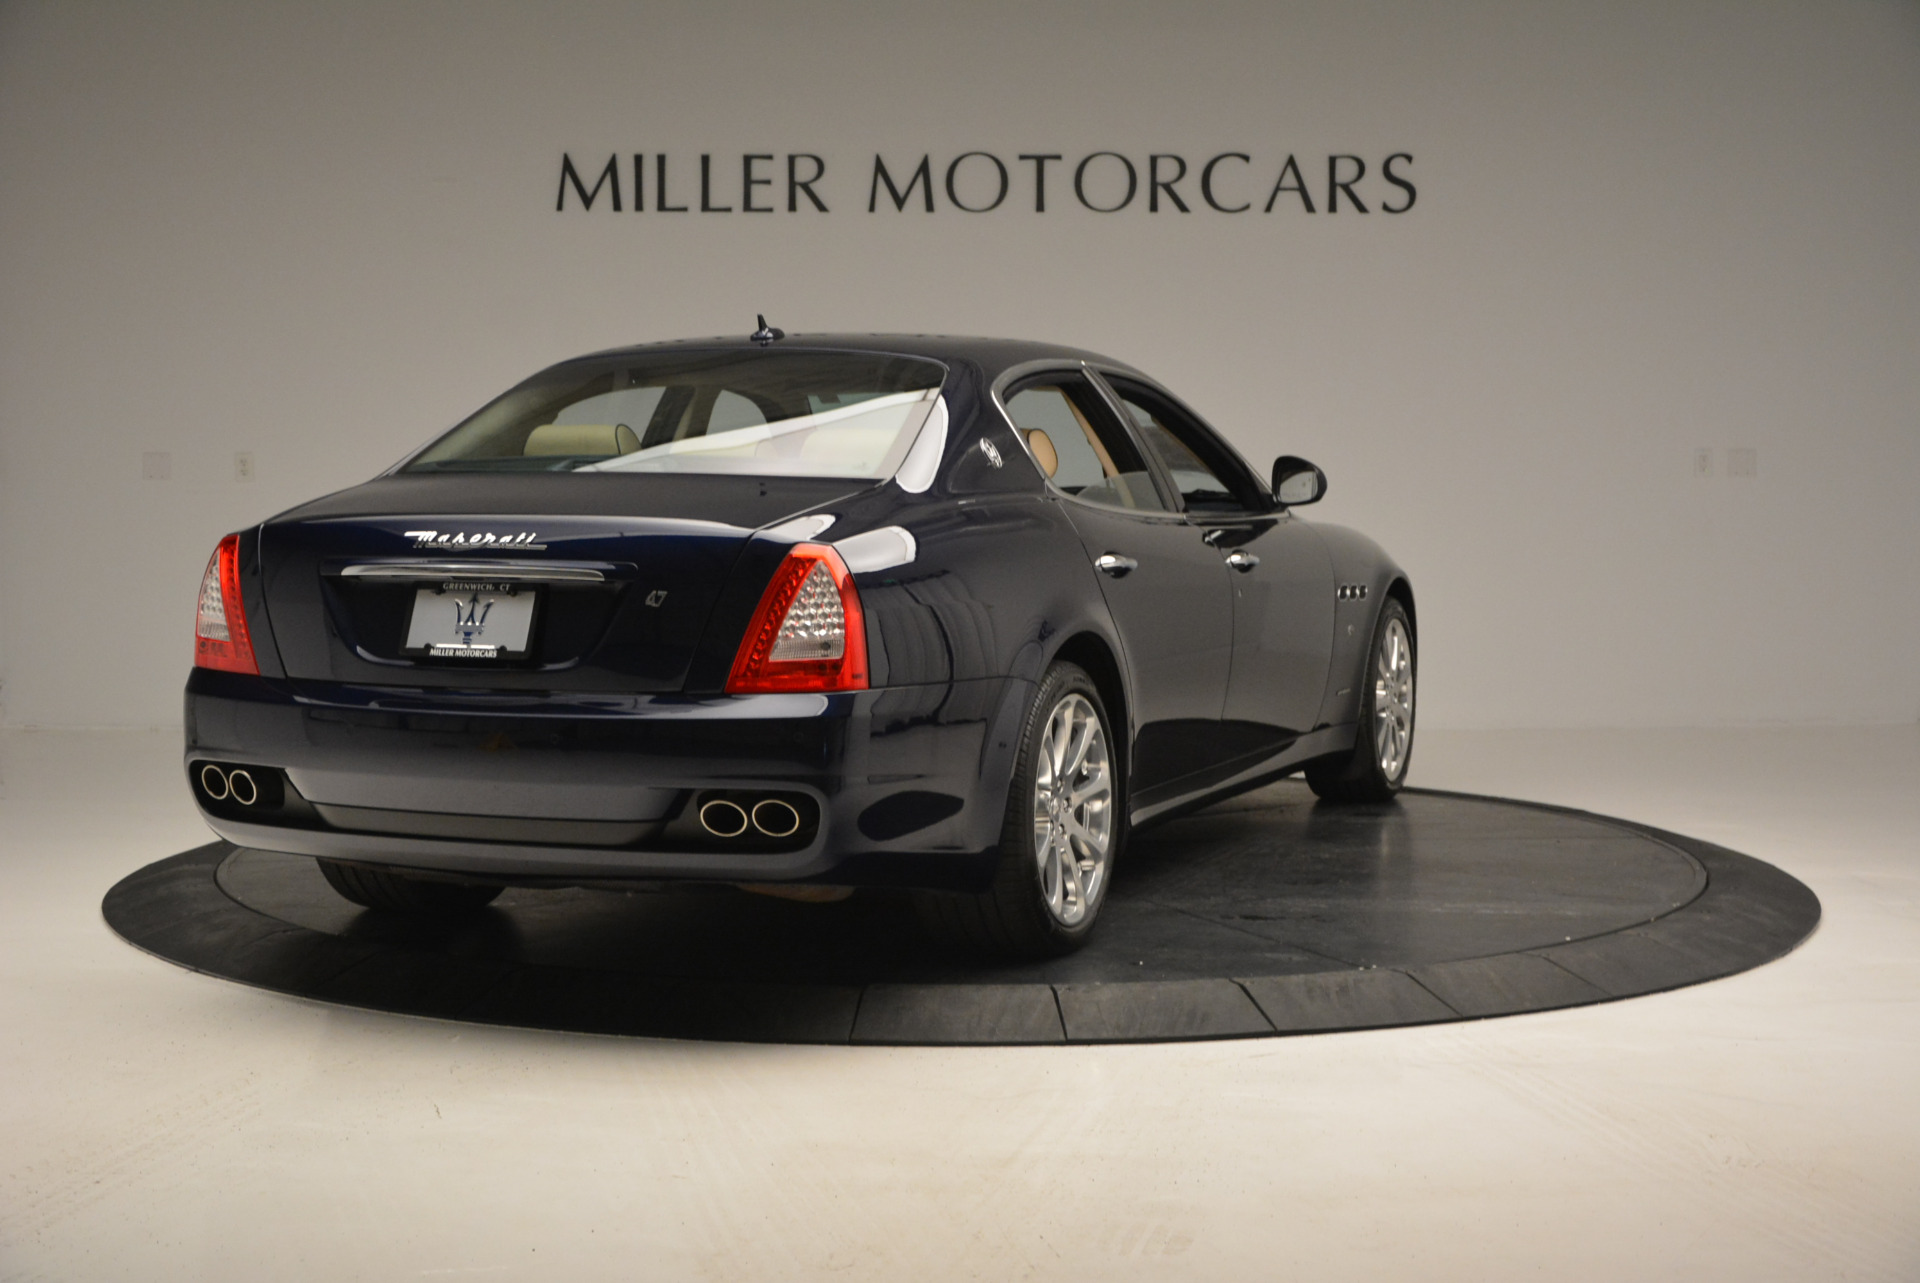 Used 2010 Maserati Quattroporte S For Sale In Westport, CT 795_p7